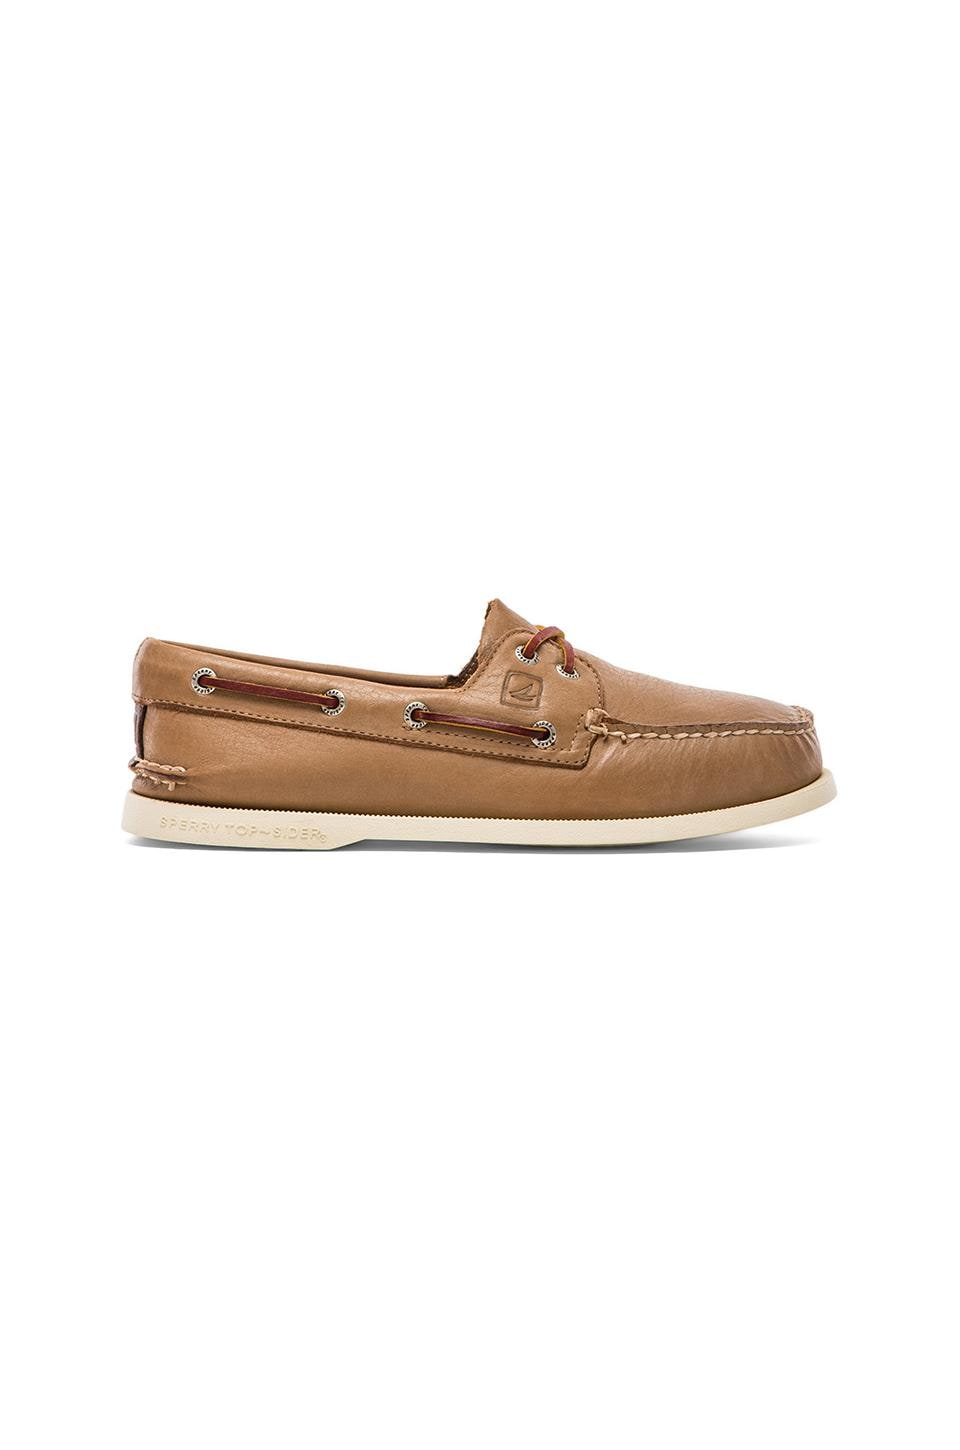 Sperry Top-Sider A/O 2-Eye Burnished in Tan